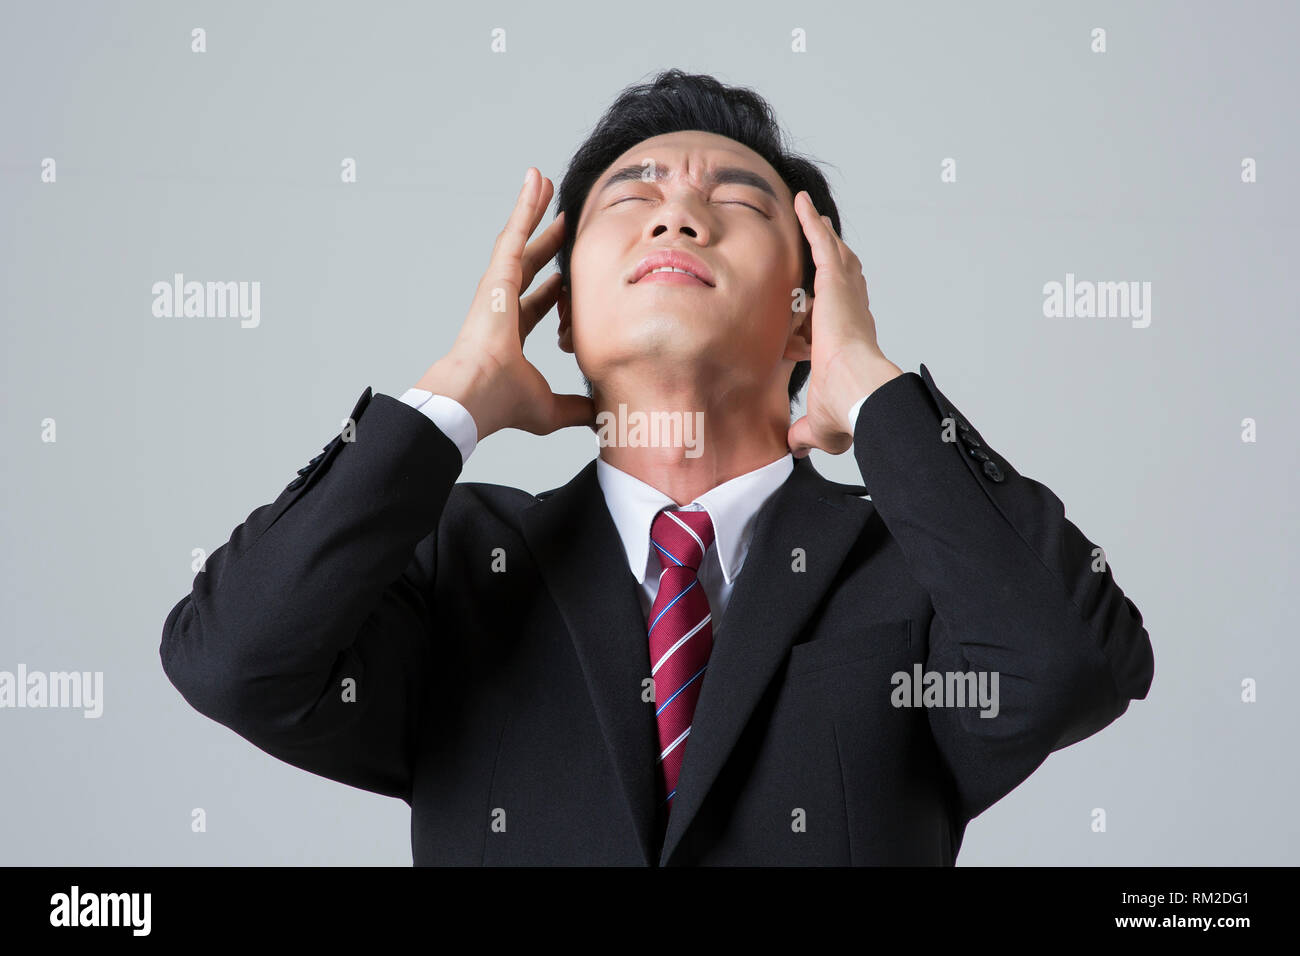 Young businessman concept photo. 036 - Stock Image